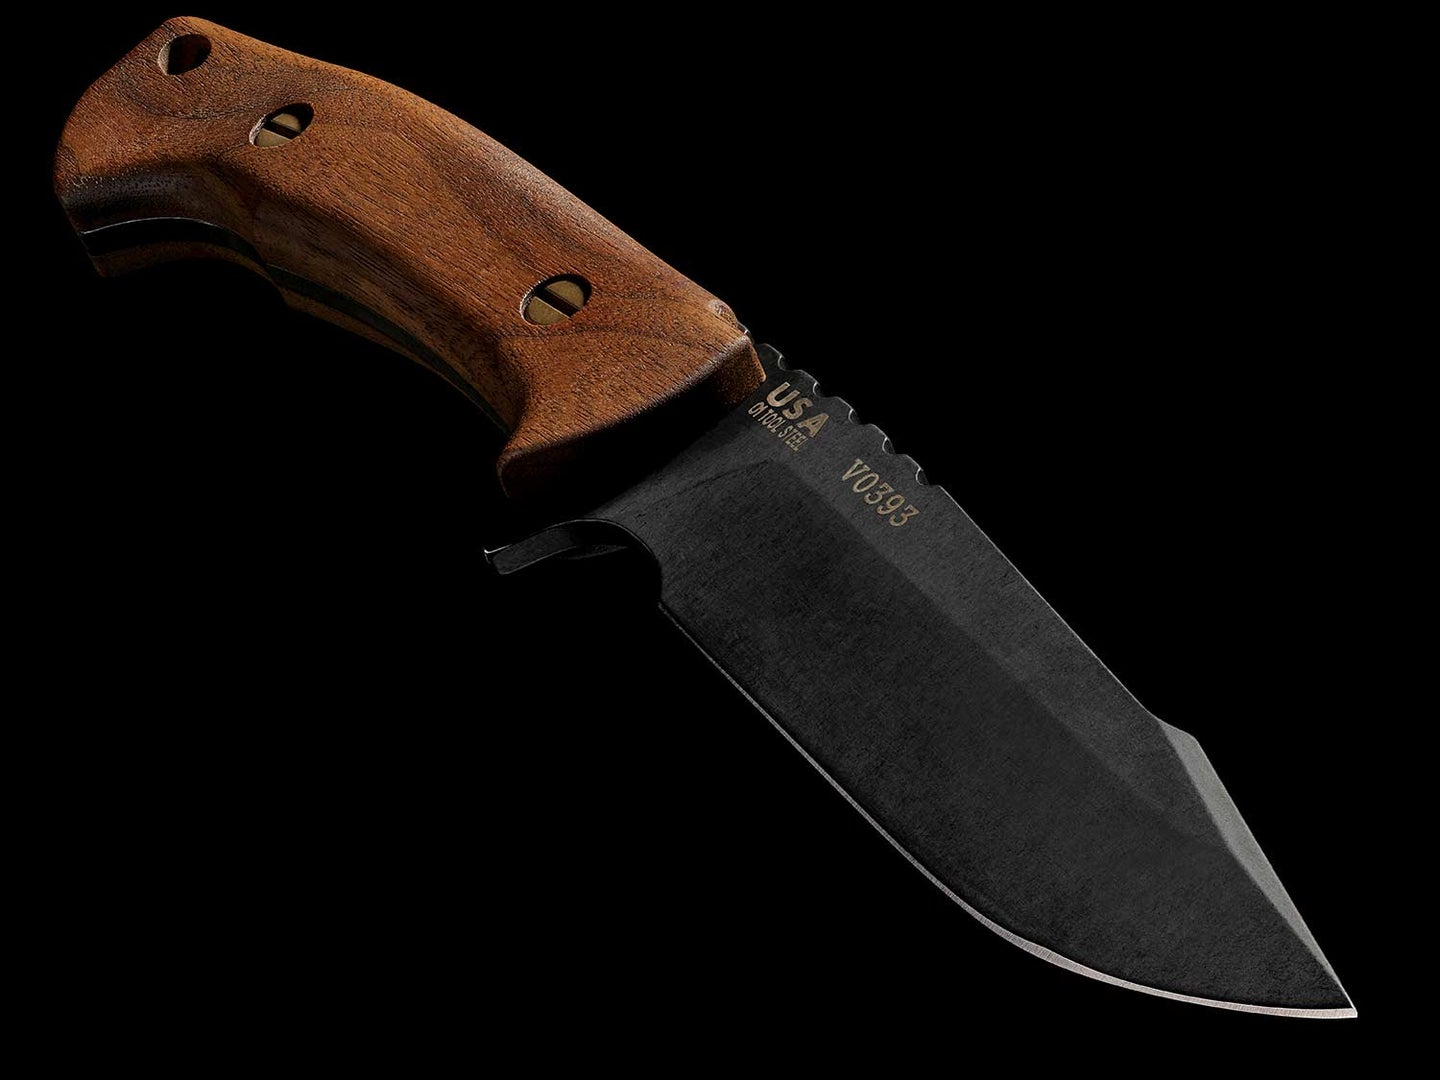 The Range Harpoon from Hinderer Knives